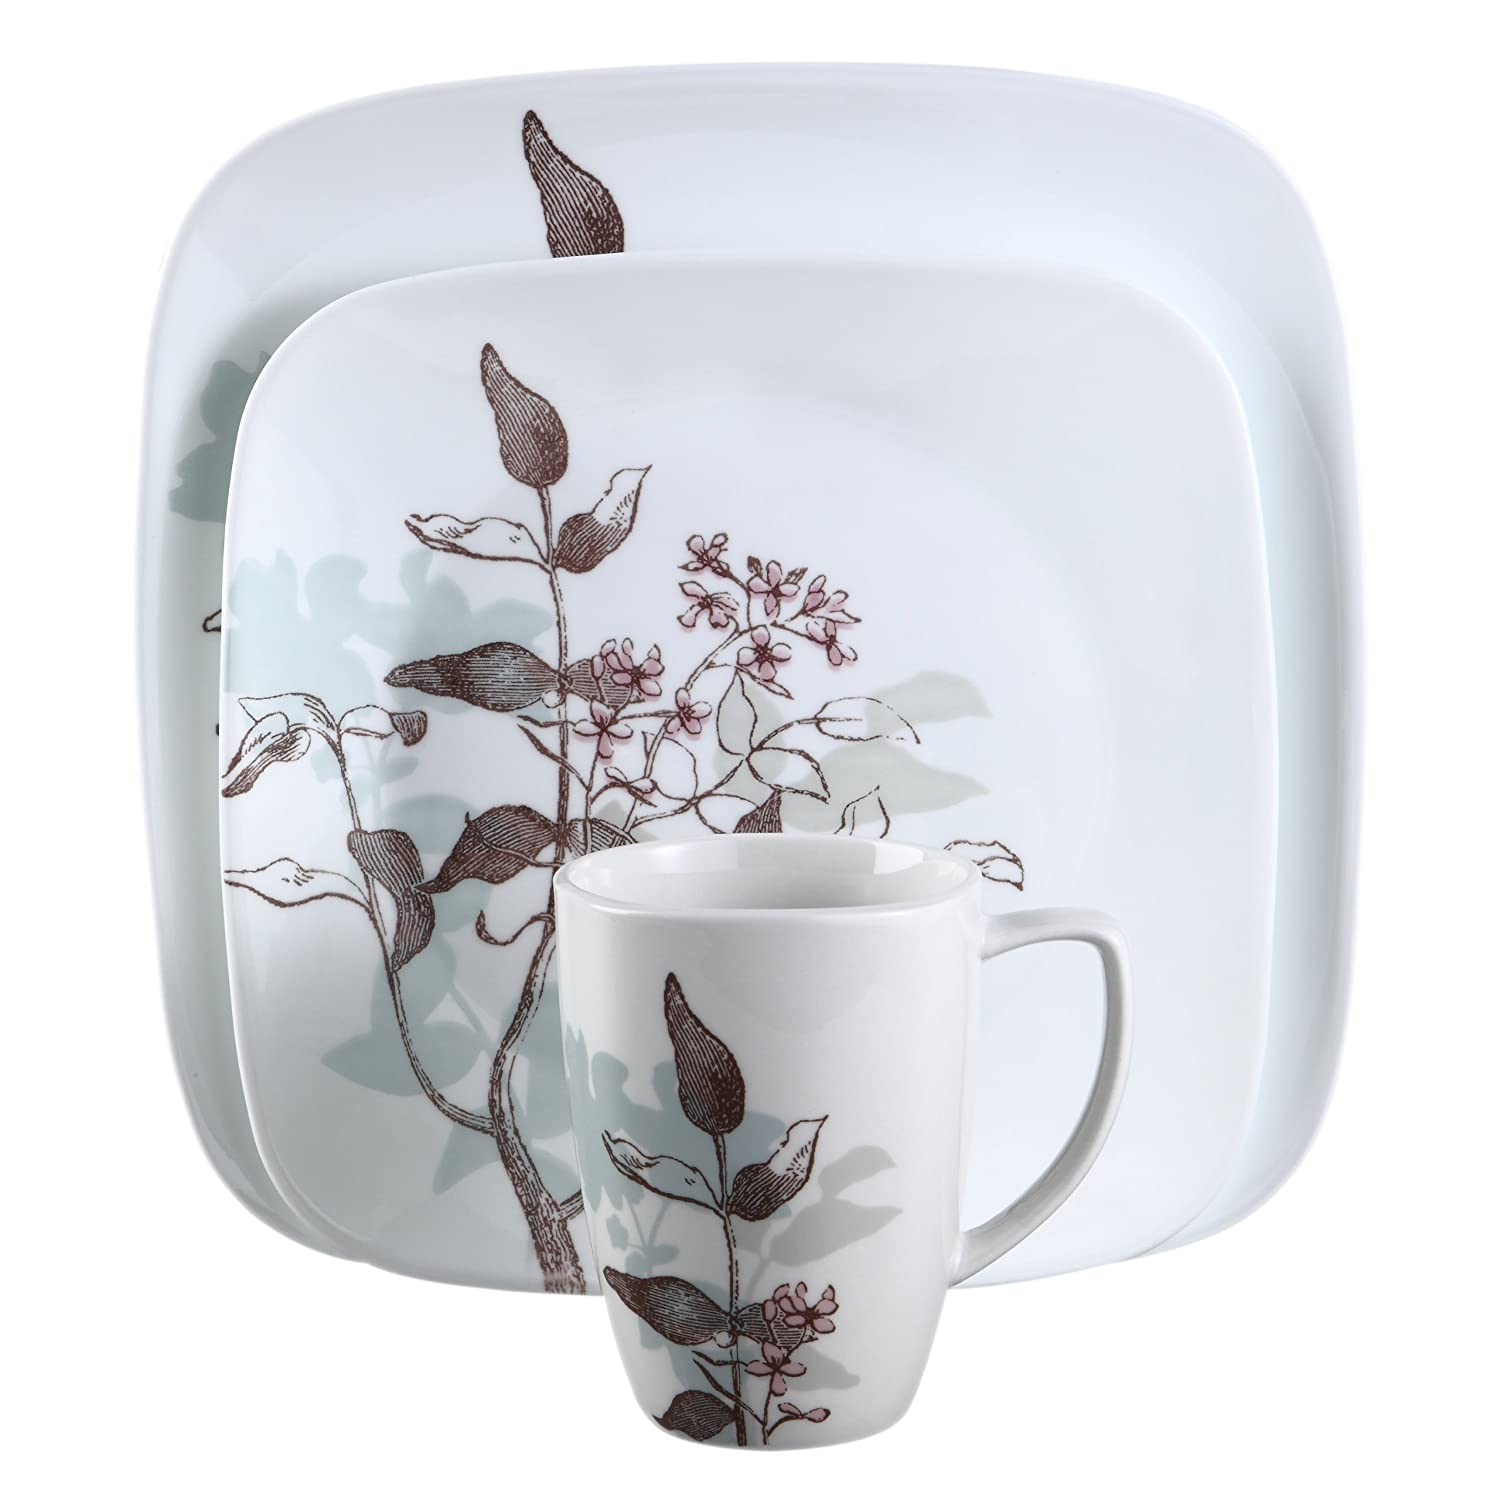 Amazon.com | Corelle Square 16-Piece Dinnerware Set Twilight Grove Service for 4 Dinnerware Sets Dinnerware Sets  sc 1 st  Amazon.com & Amazon.com | Corelle Square 16-Piece Dinnerware Set Twilight Grove ...